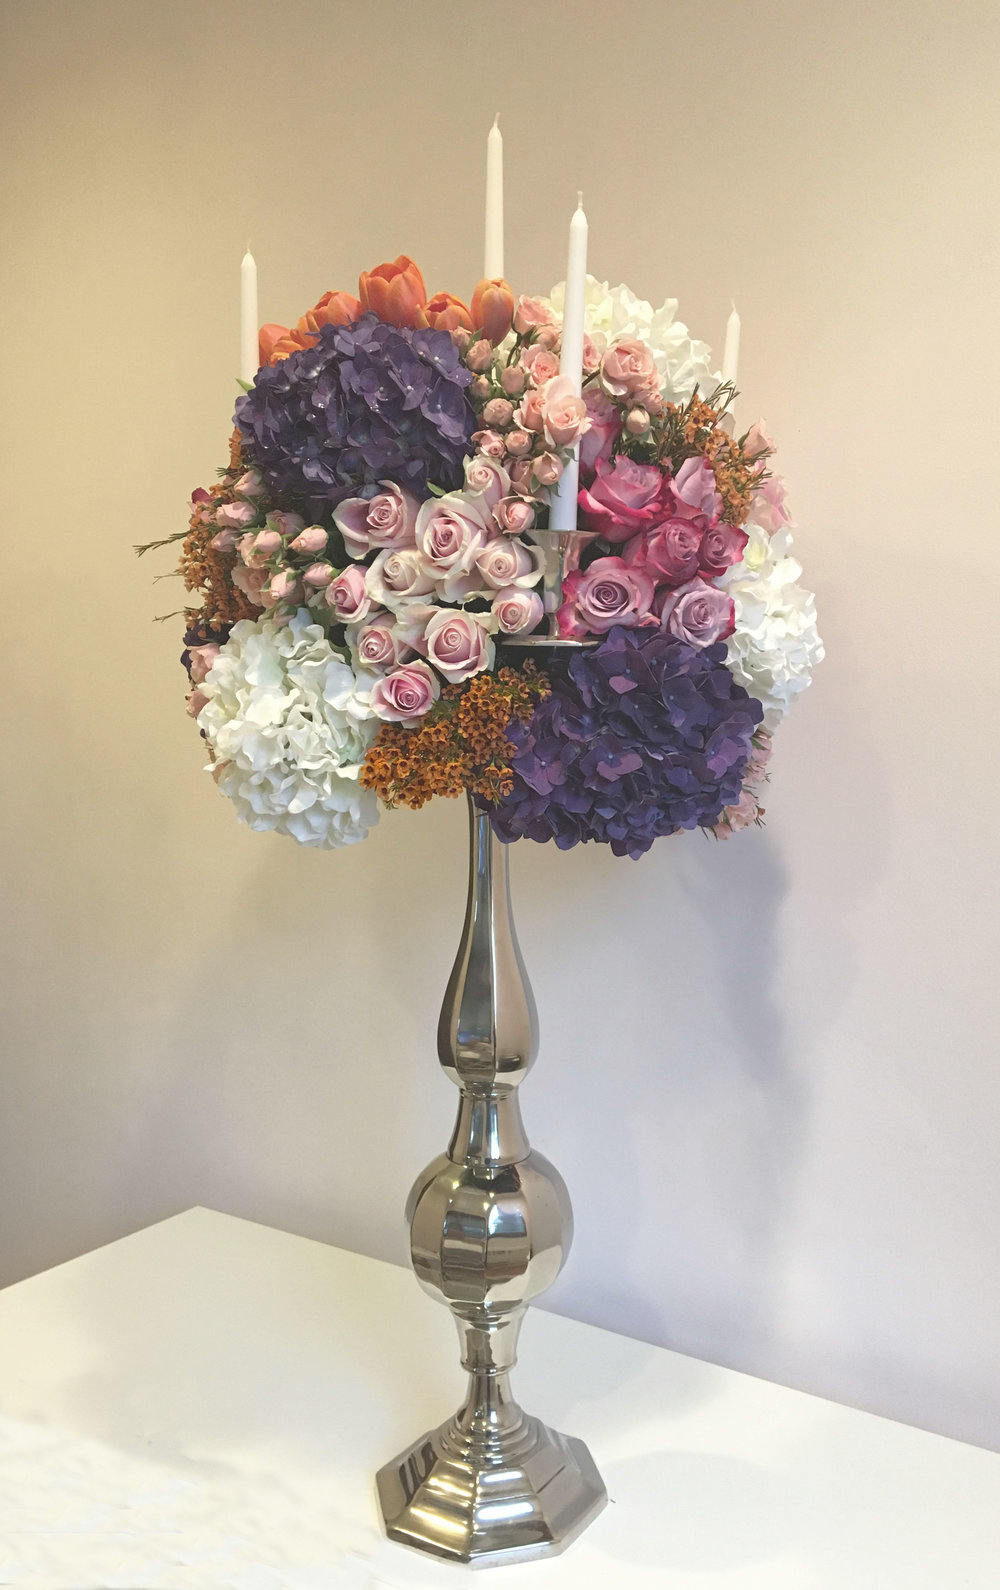 Evelisa Floral & Design: candelabra arrangement